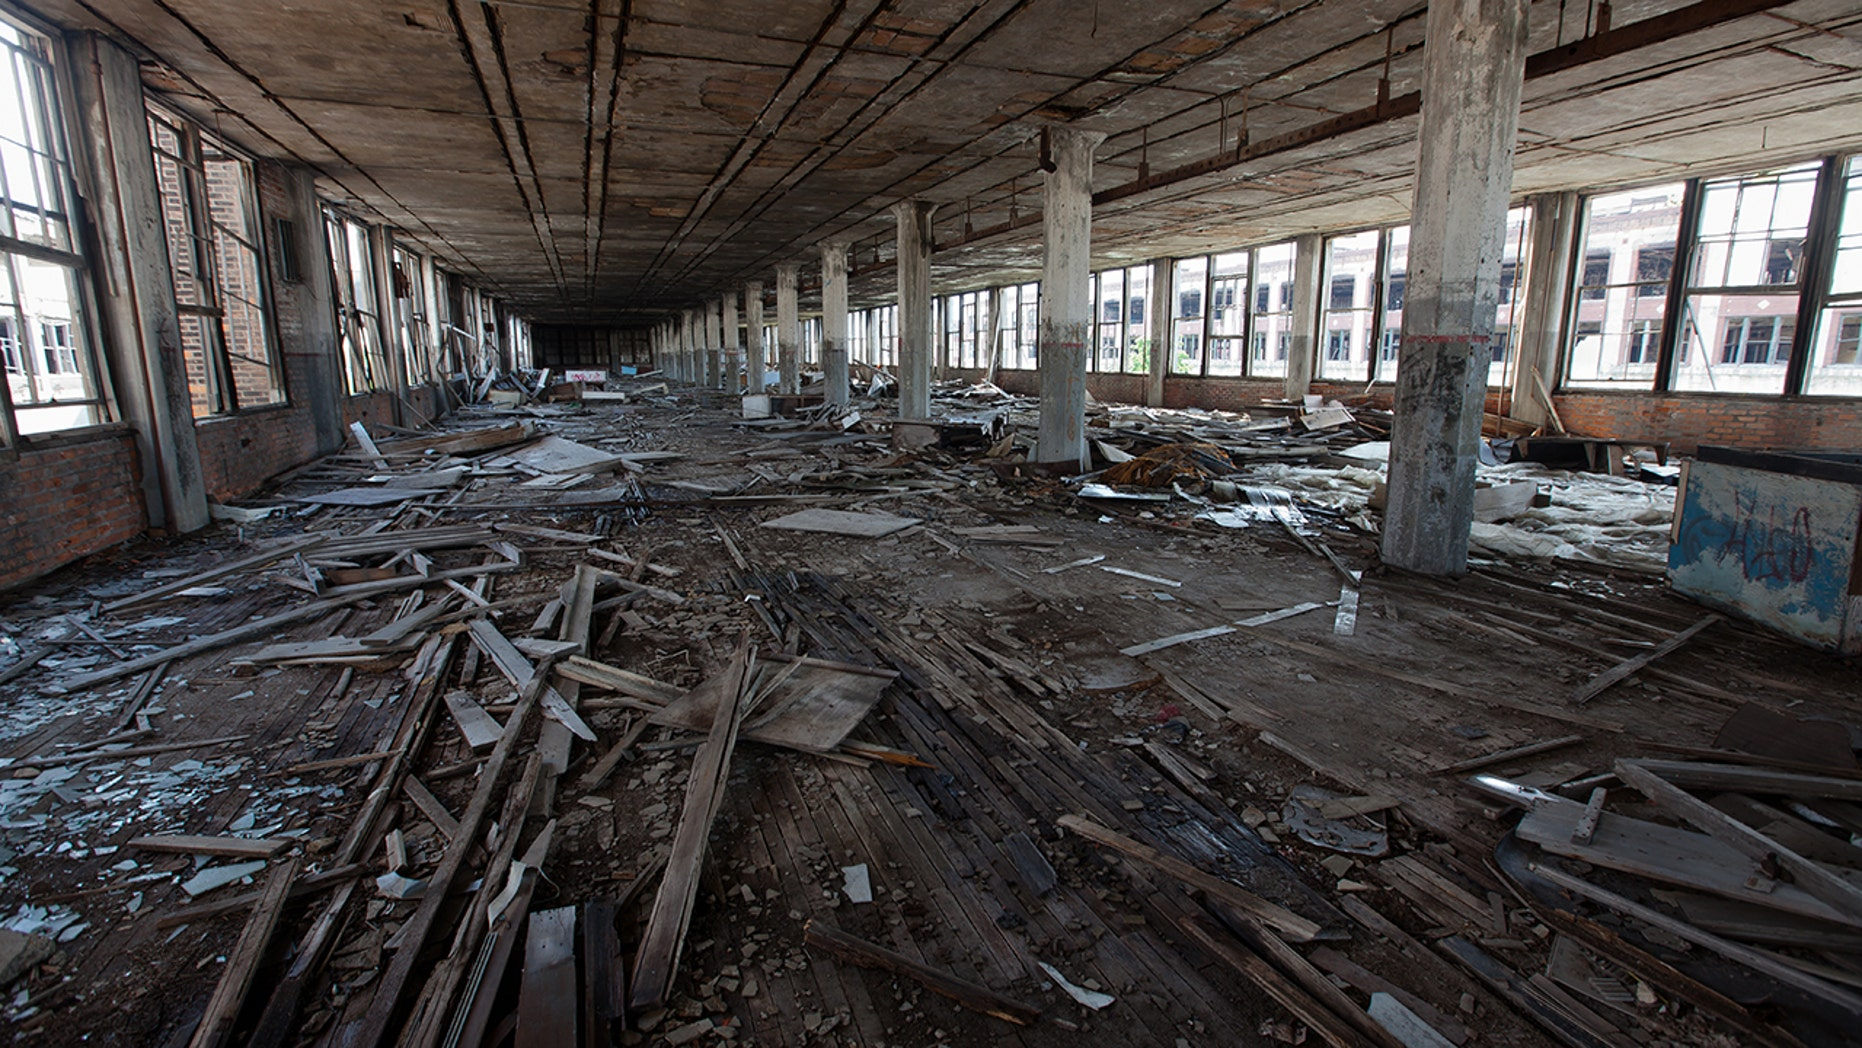 historic Packard Automotive Plant inside